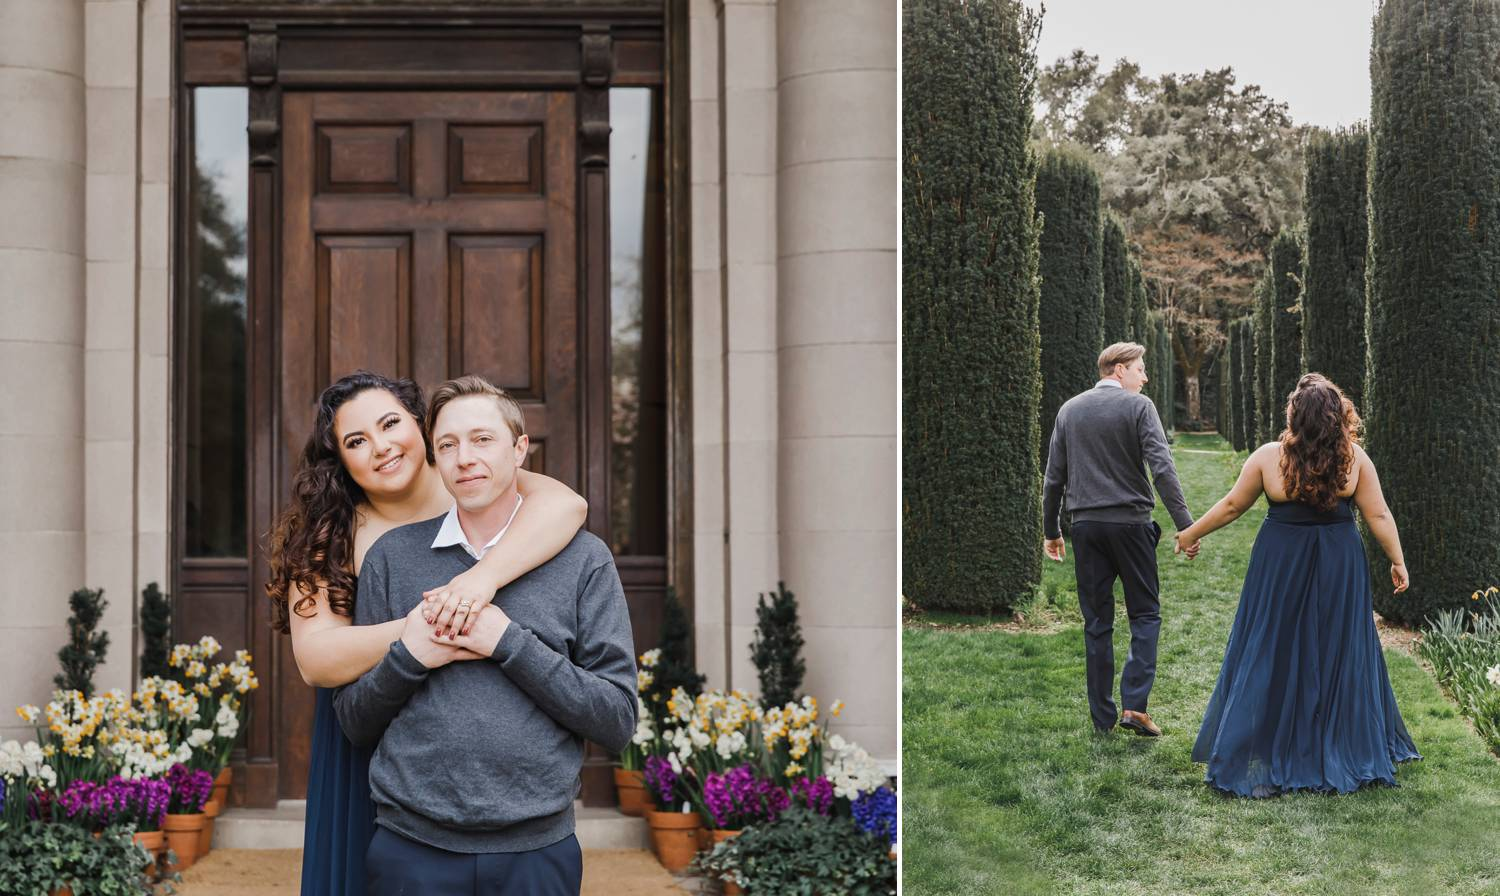 An engaged couple poses for photos in front of an old mansion